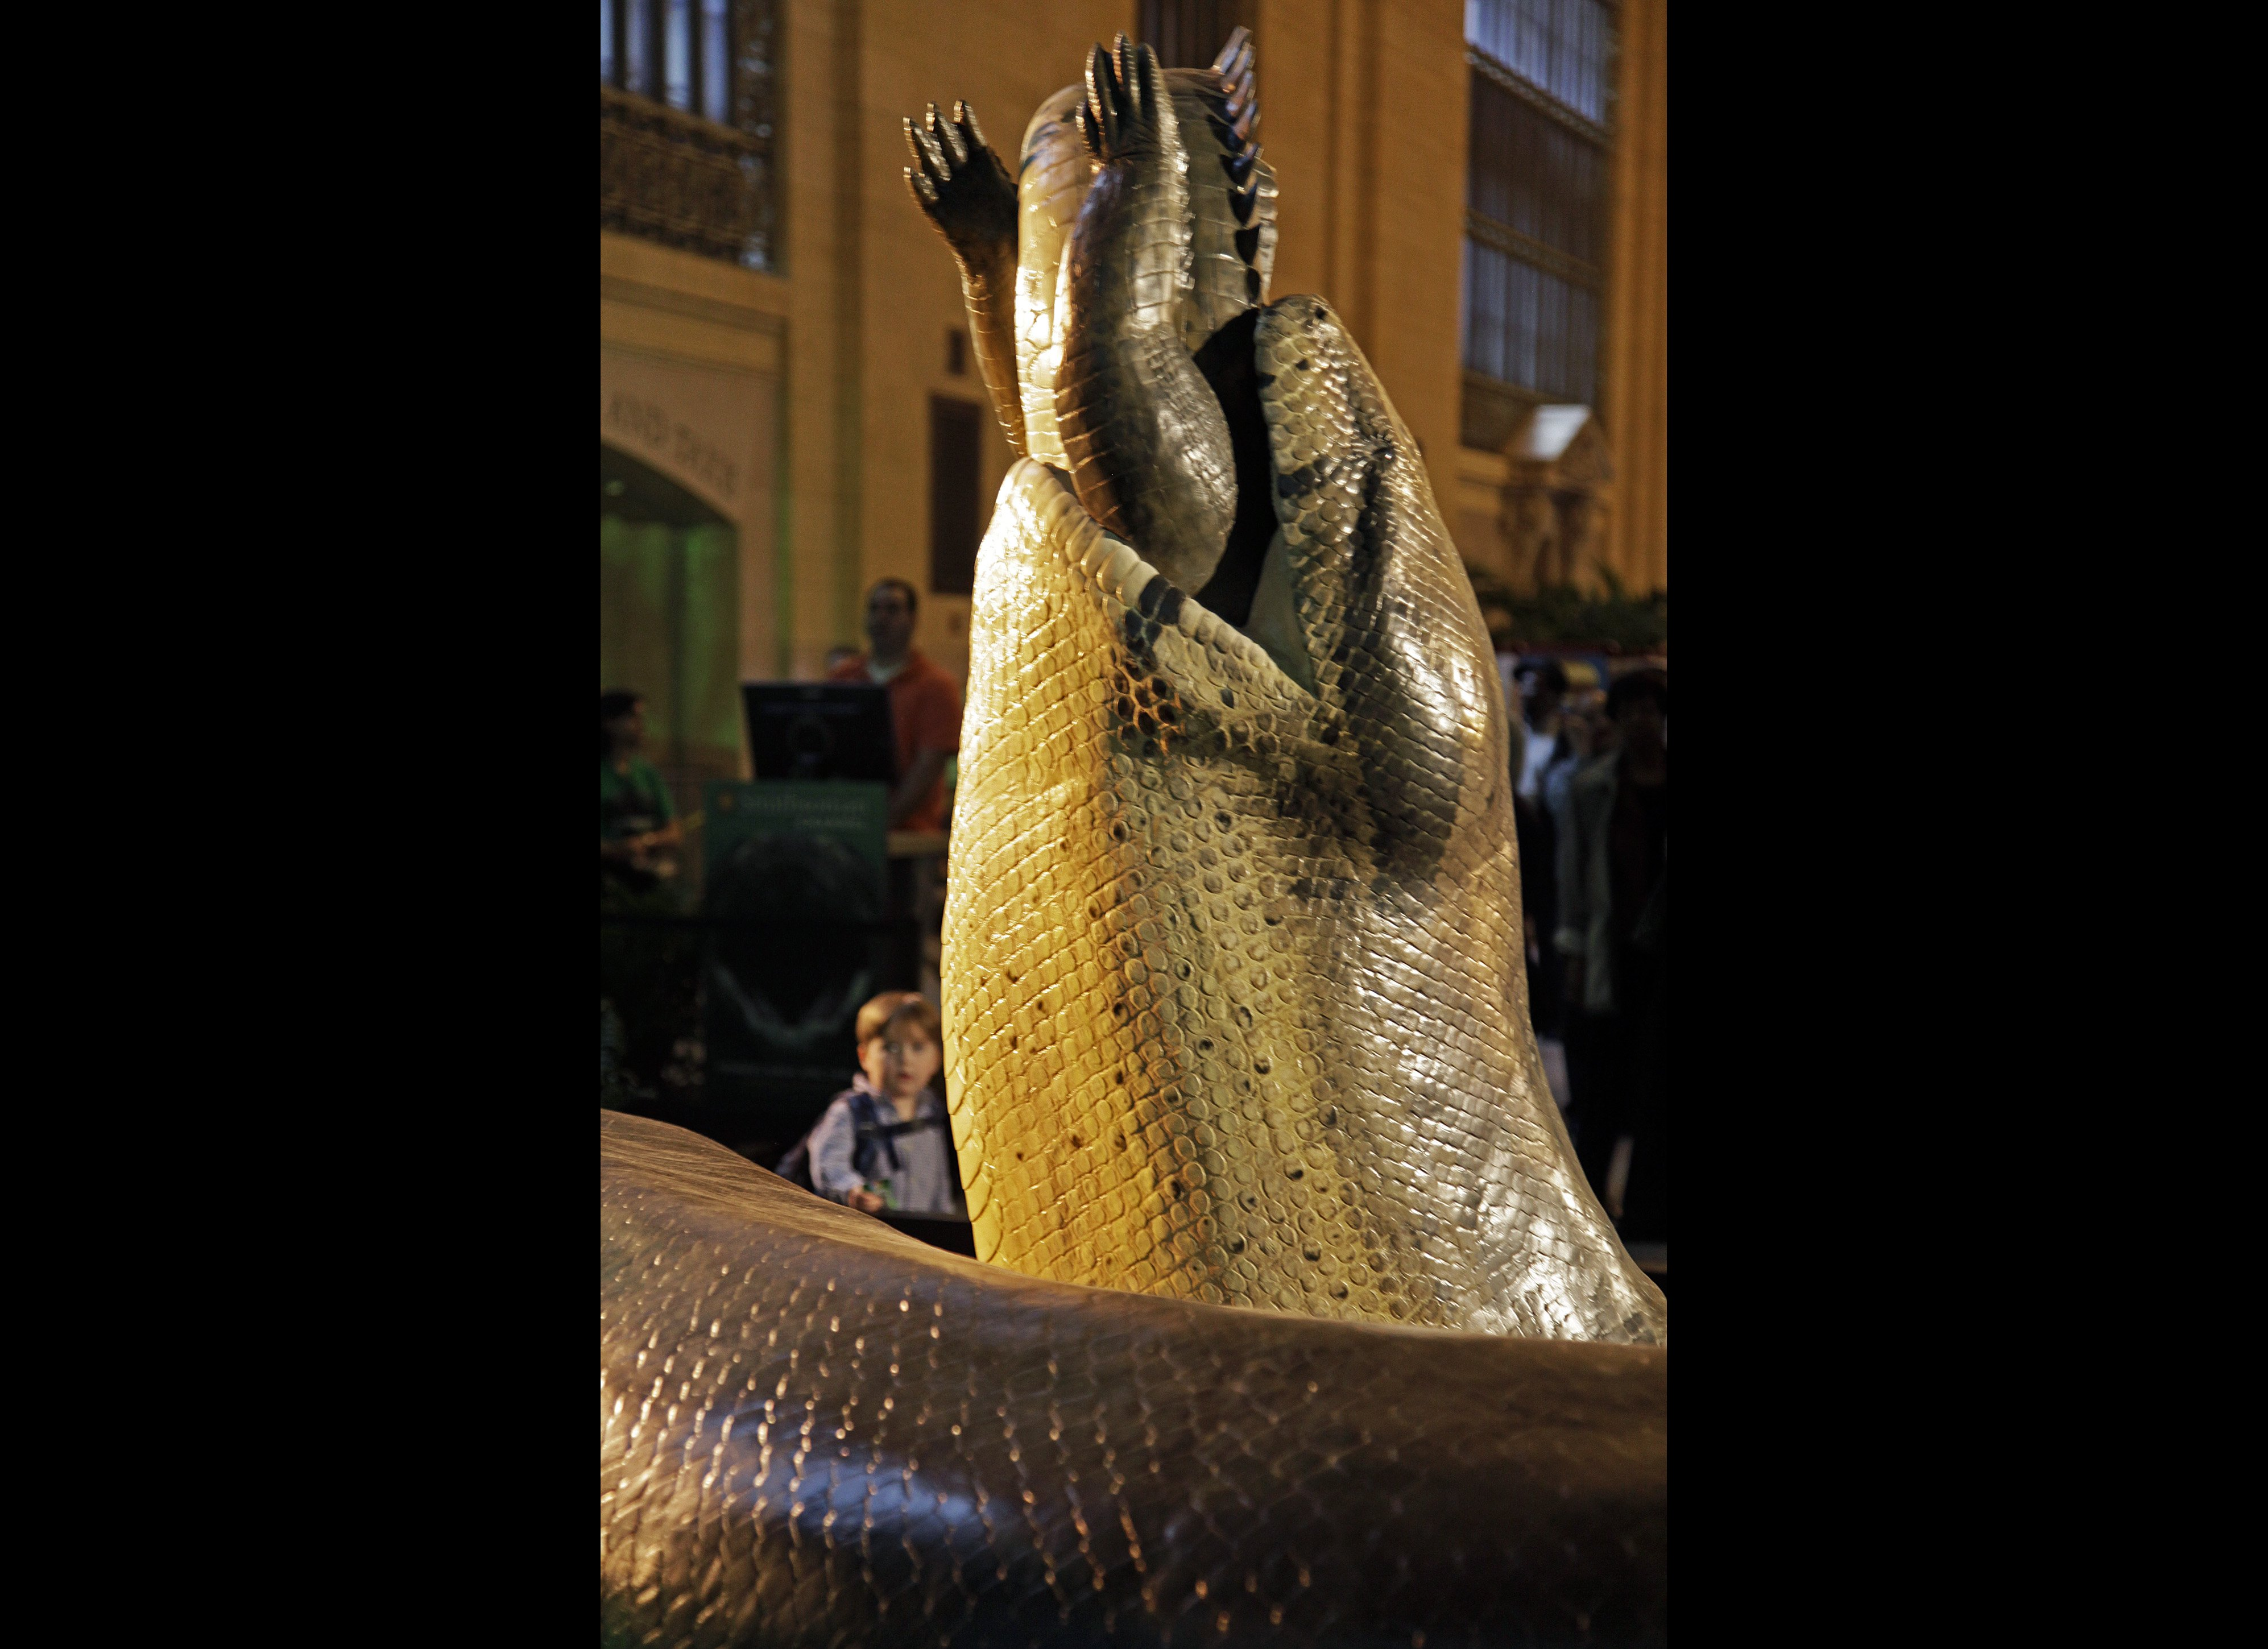 Biggest Snake In The World Ever Recorded The world's largest snake,